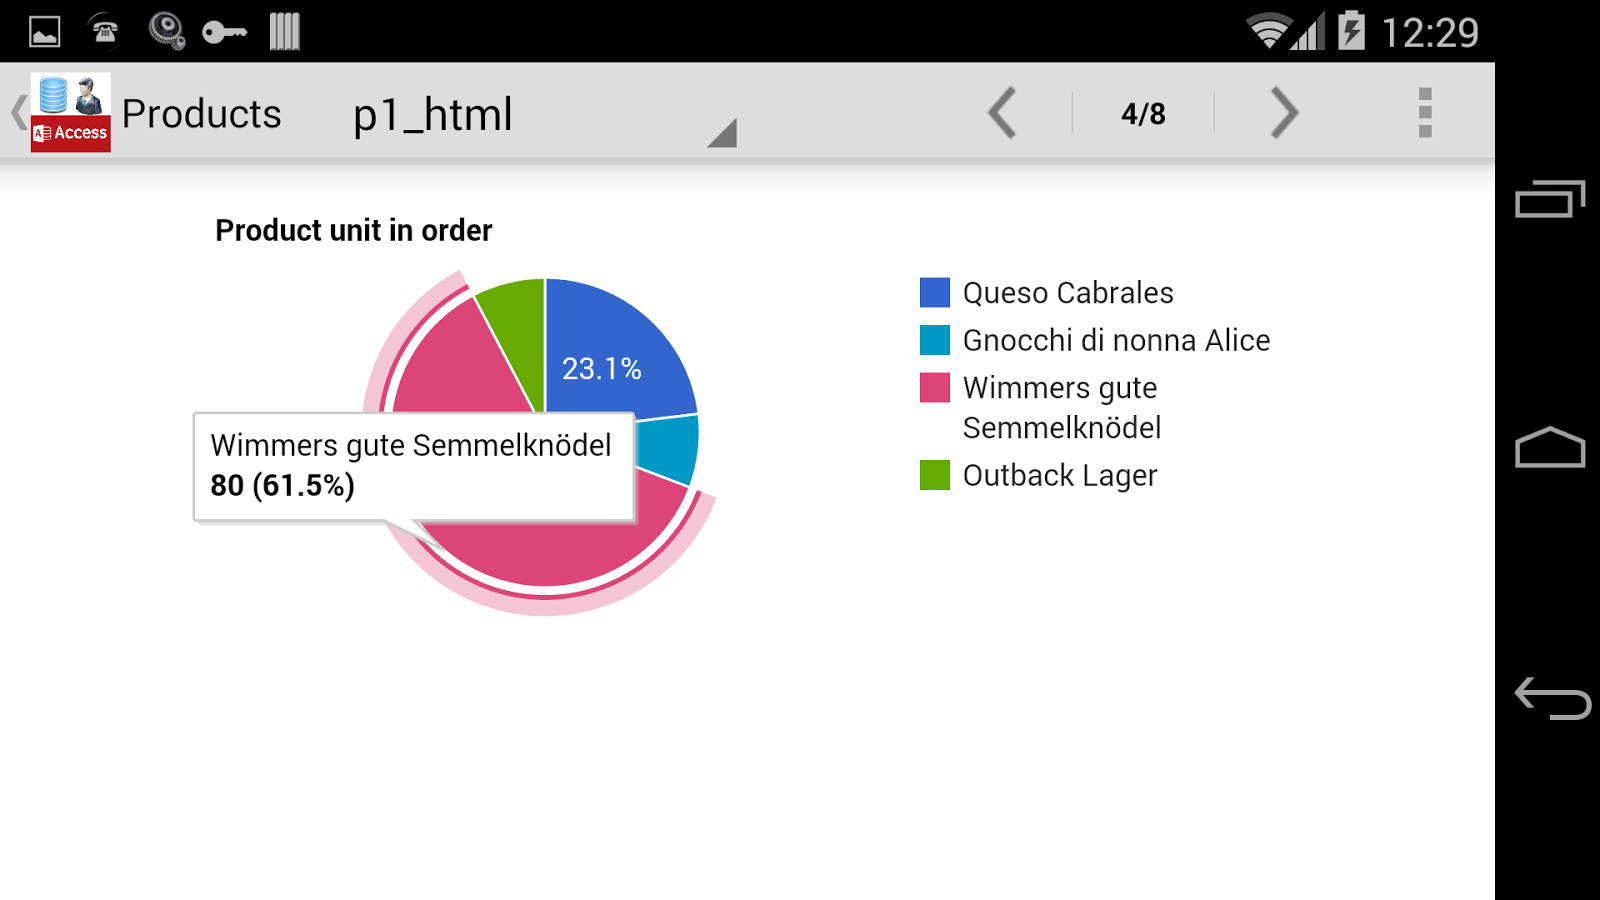 How to view the contents of an Android APK file? - Stack ...